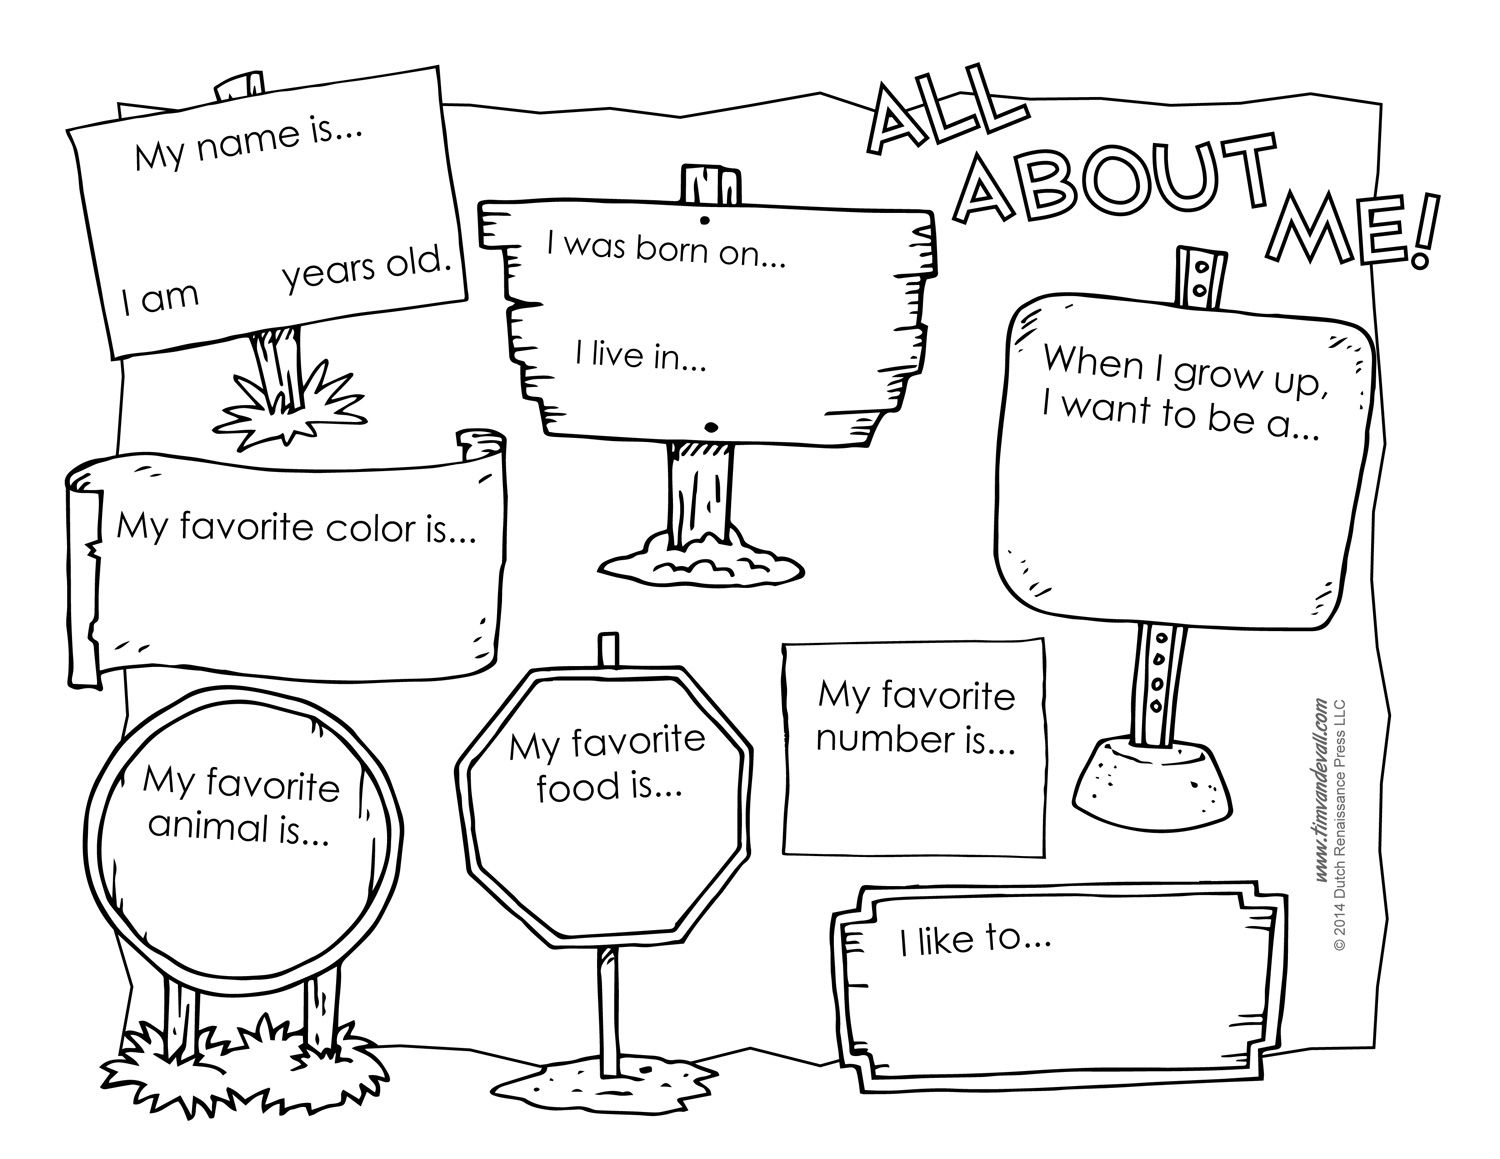 Pin By Aaron Addis On Classroom All About Me Worksheet Worksheets